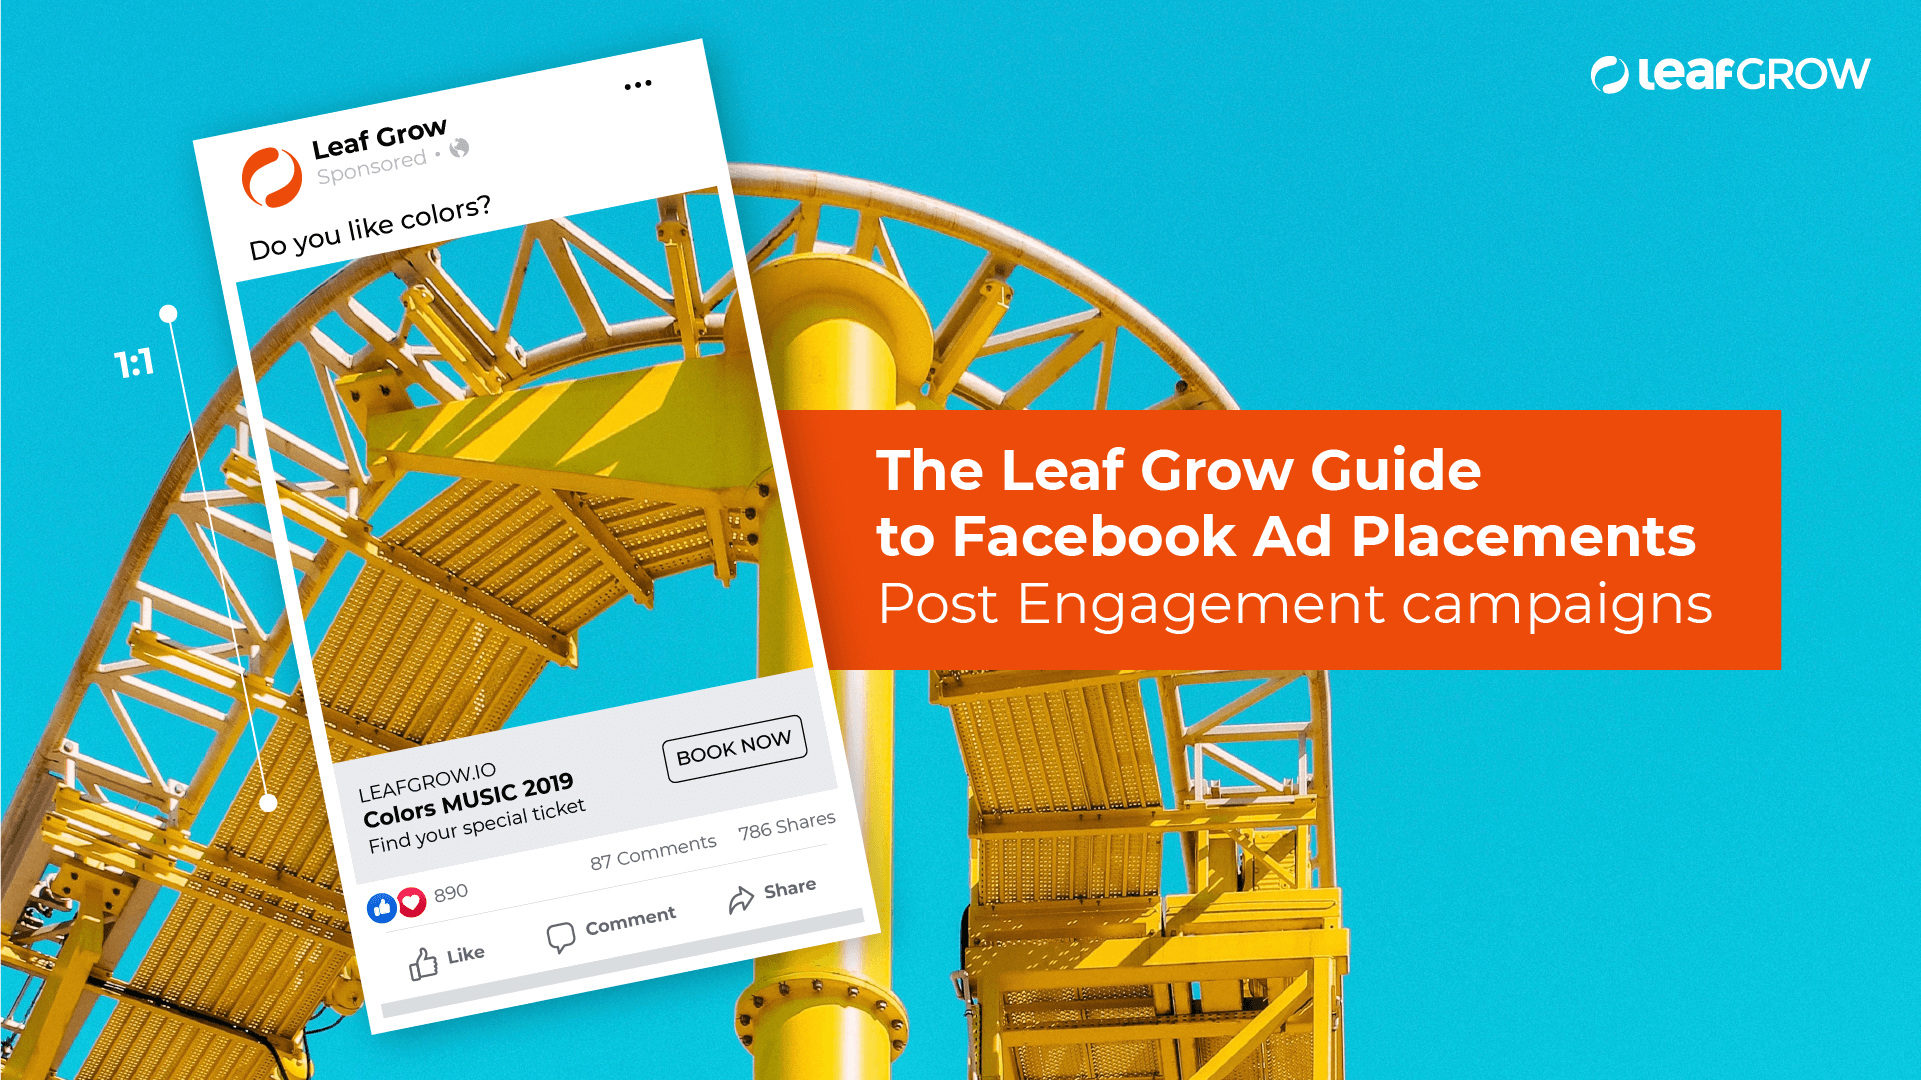 The Leaf Grow Guide to Facebook Ad Placements: Post Engagement campaigns -